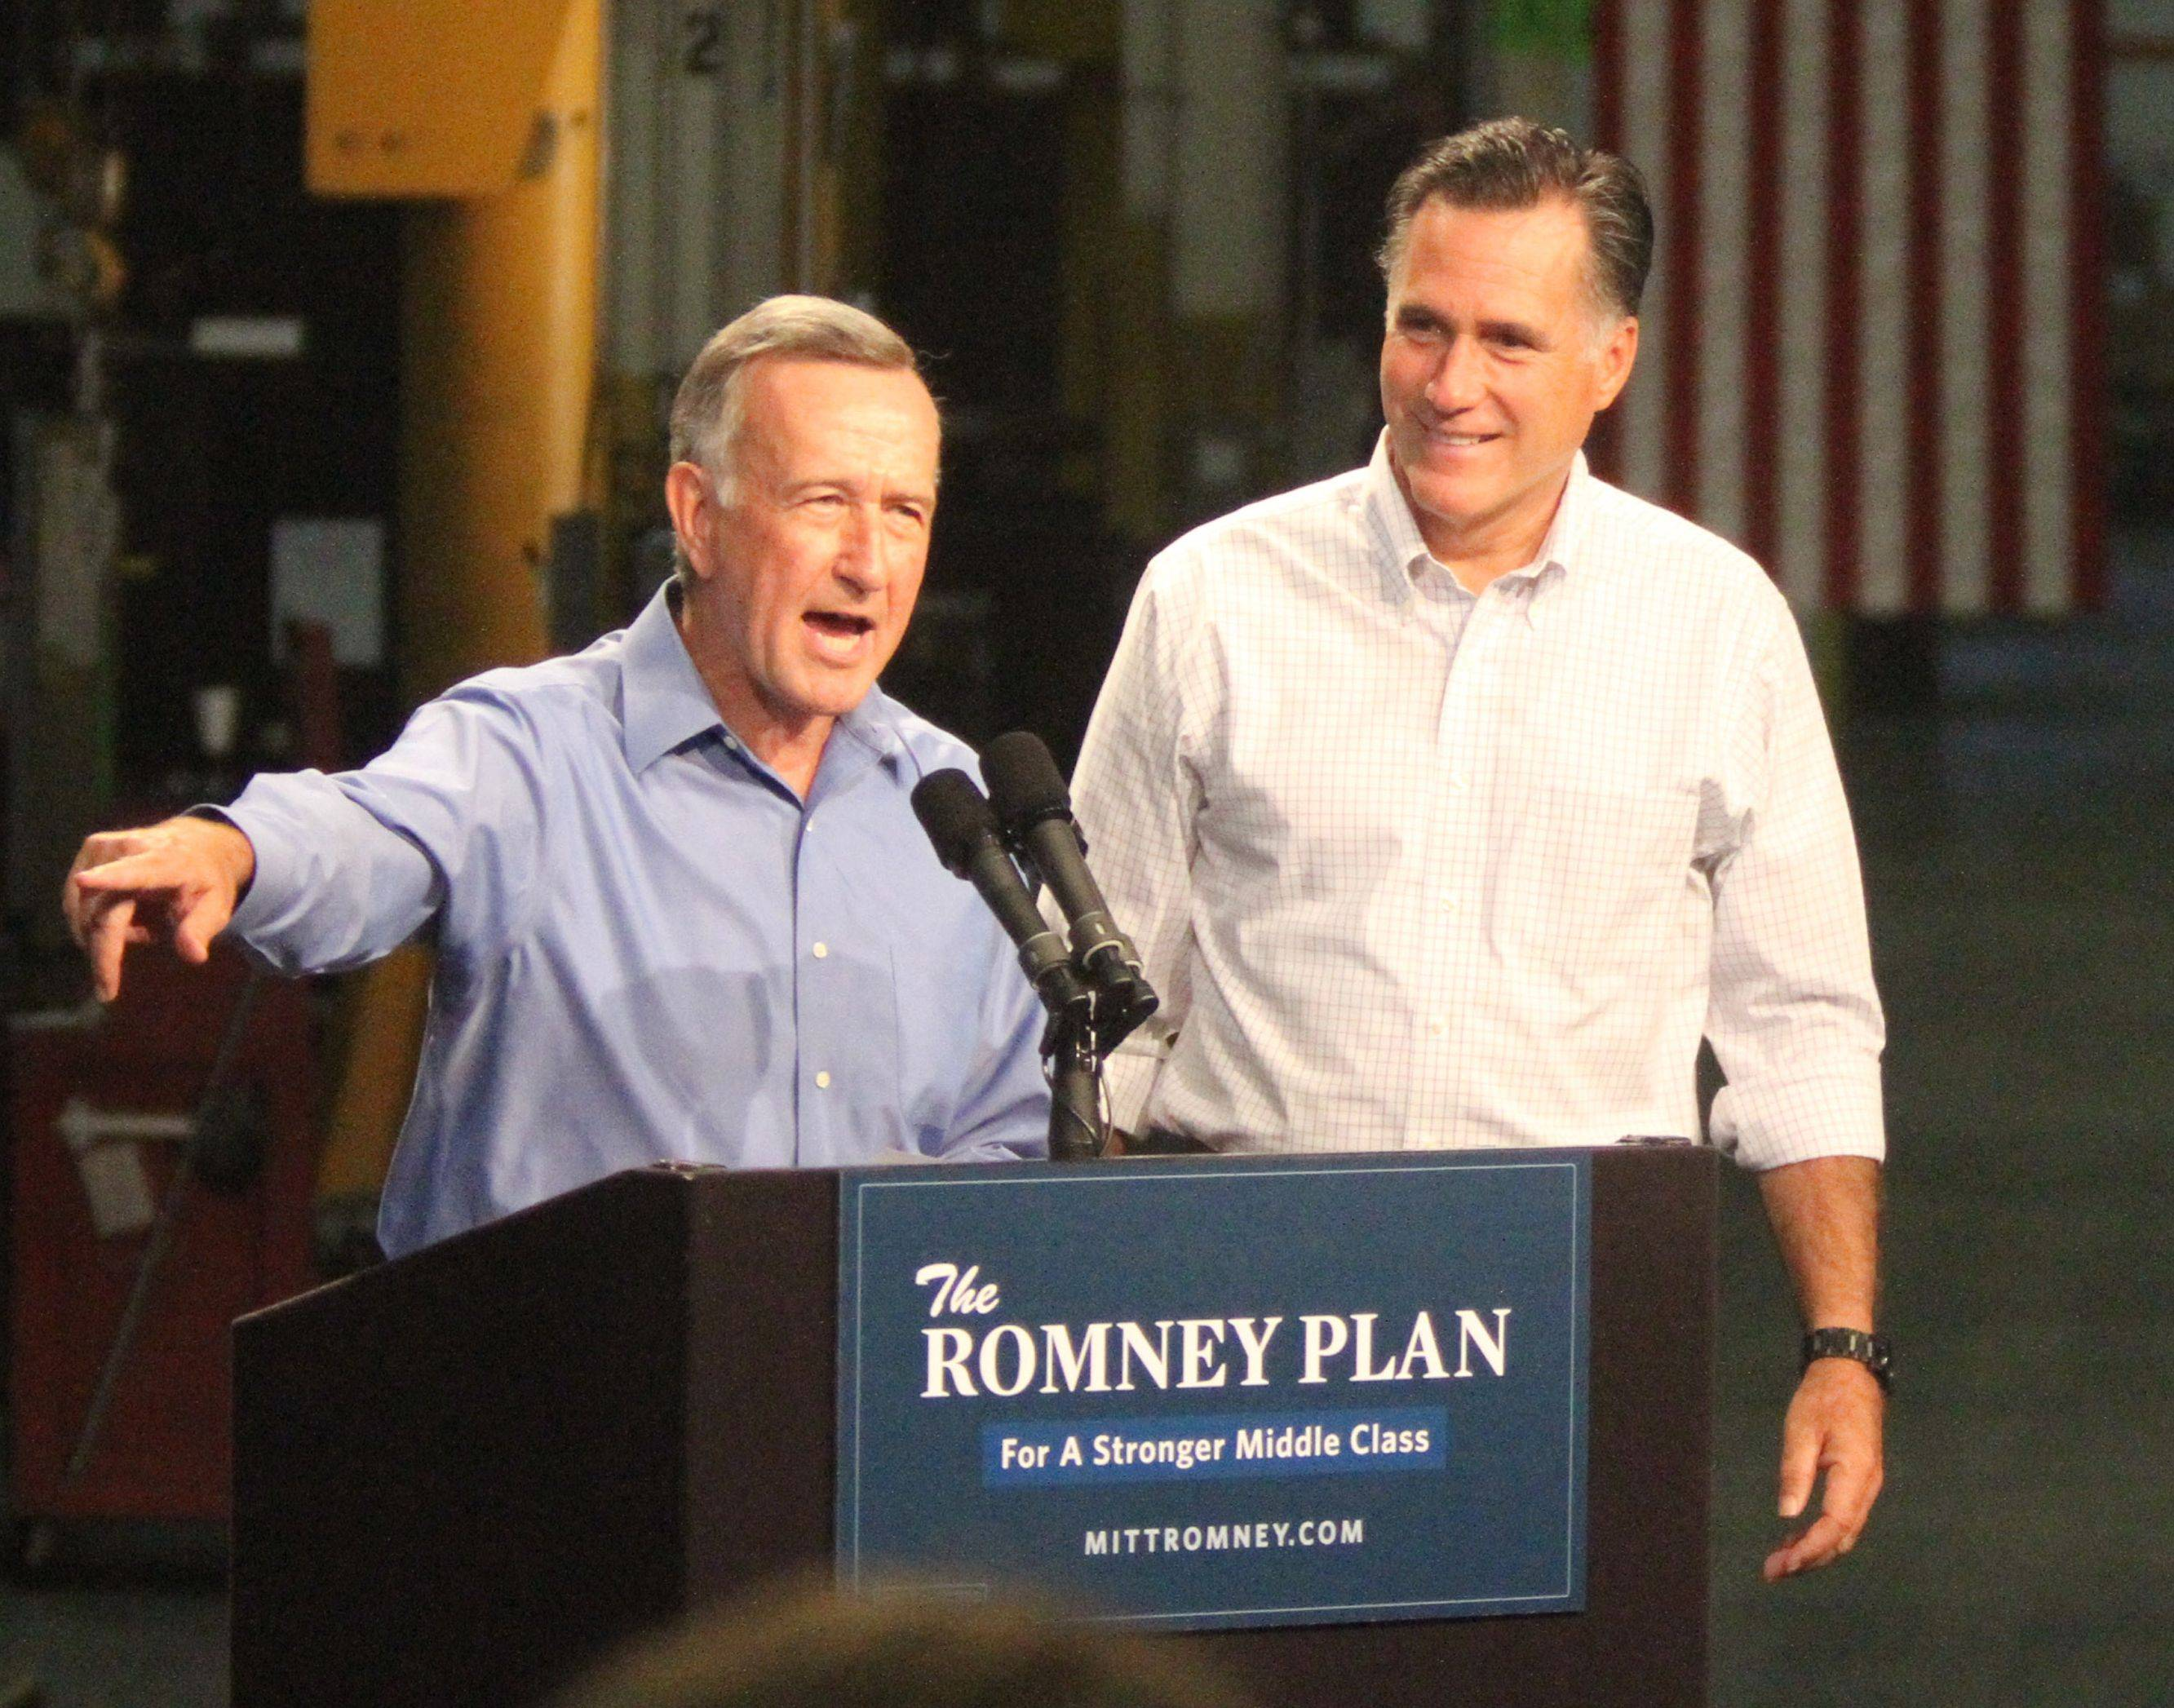 Acme Industries CEO Warren Young introduced GOP presidential candidate Mitt Romney at Acme Industries in Elk Grove Village earlier this summer.